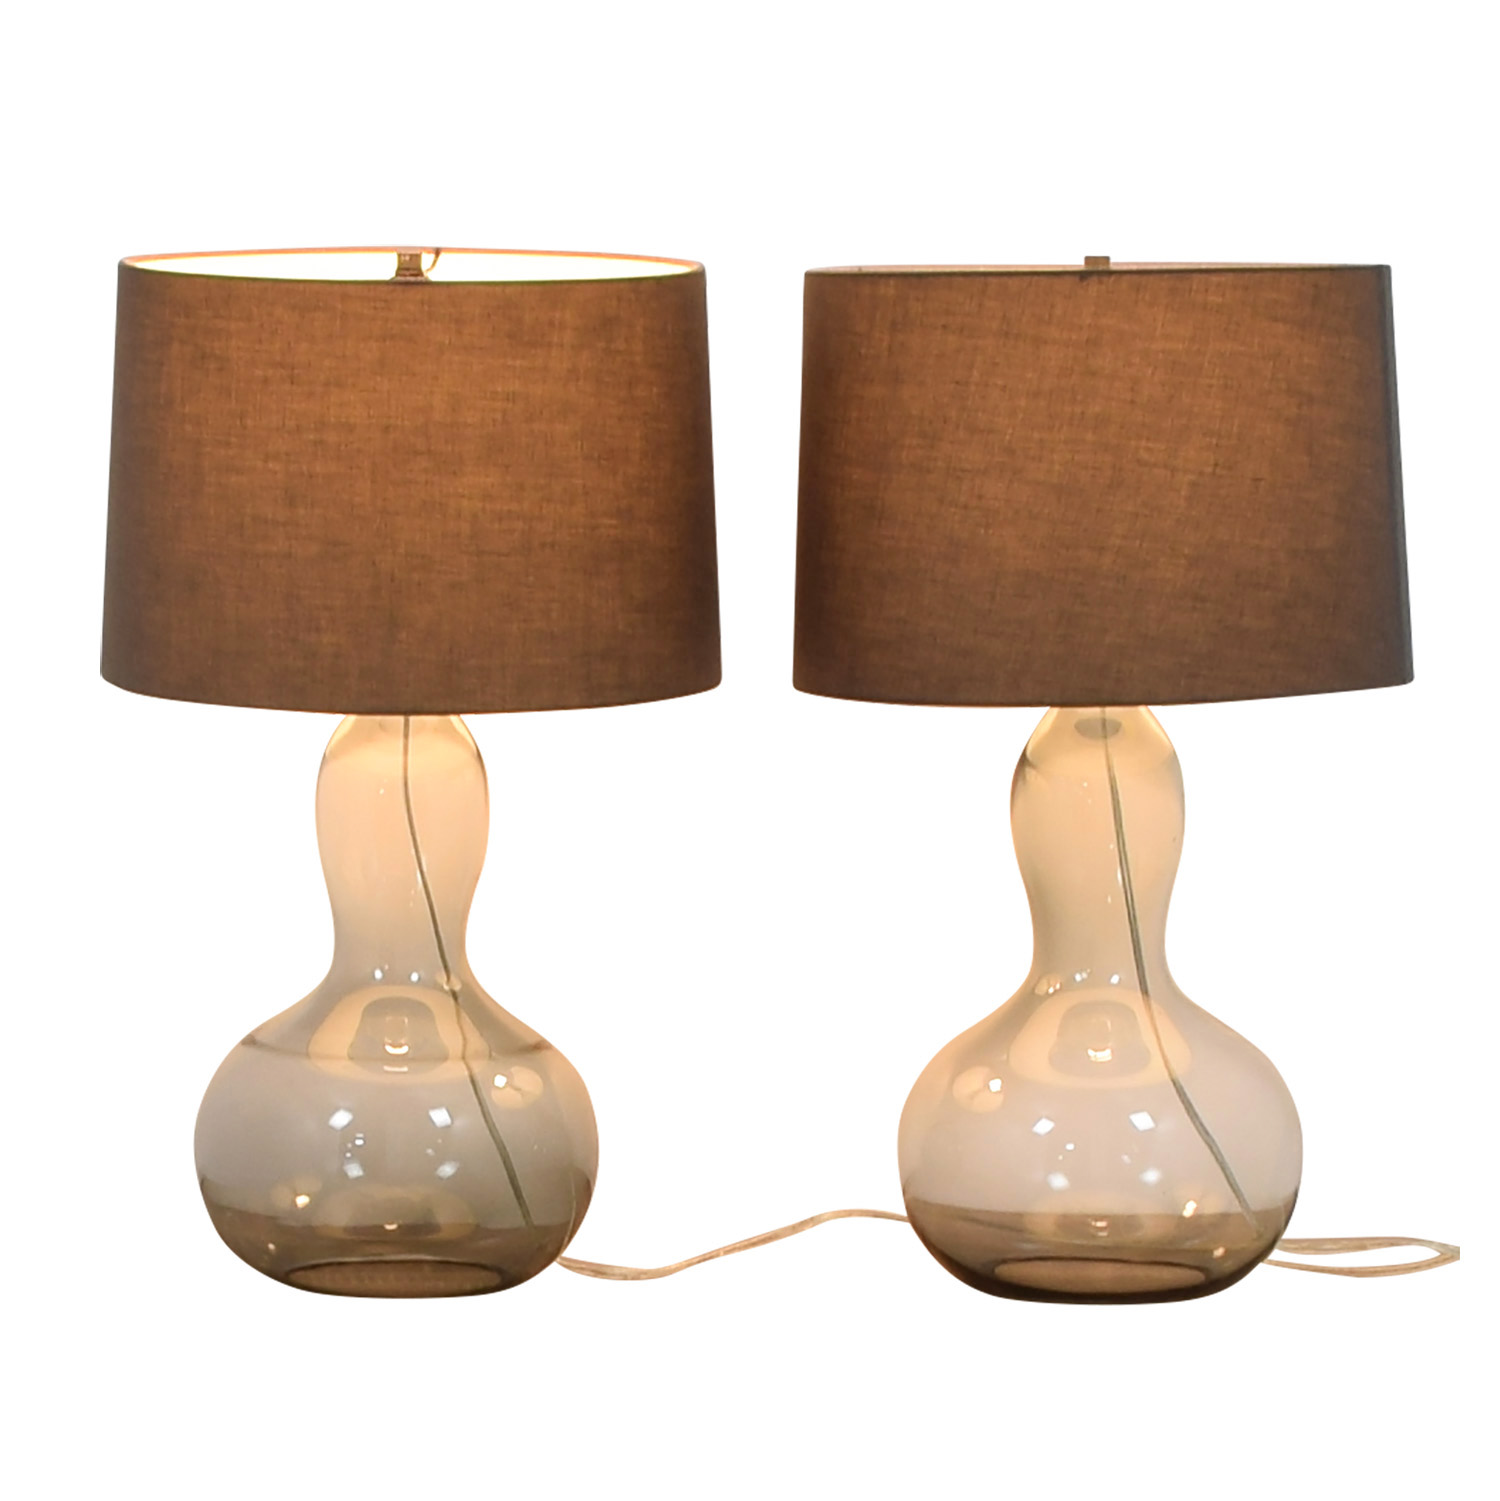 West Elm West Elm Gourd Glass Lamps